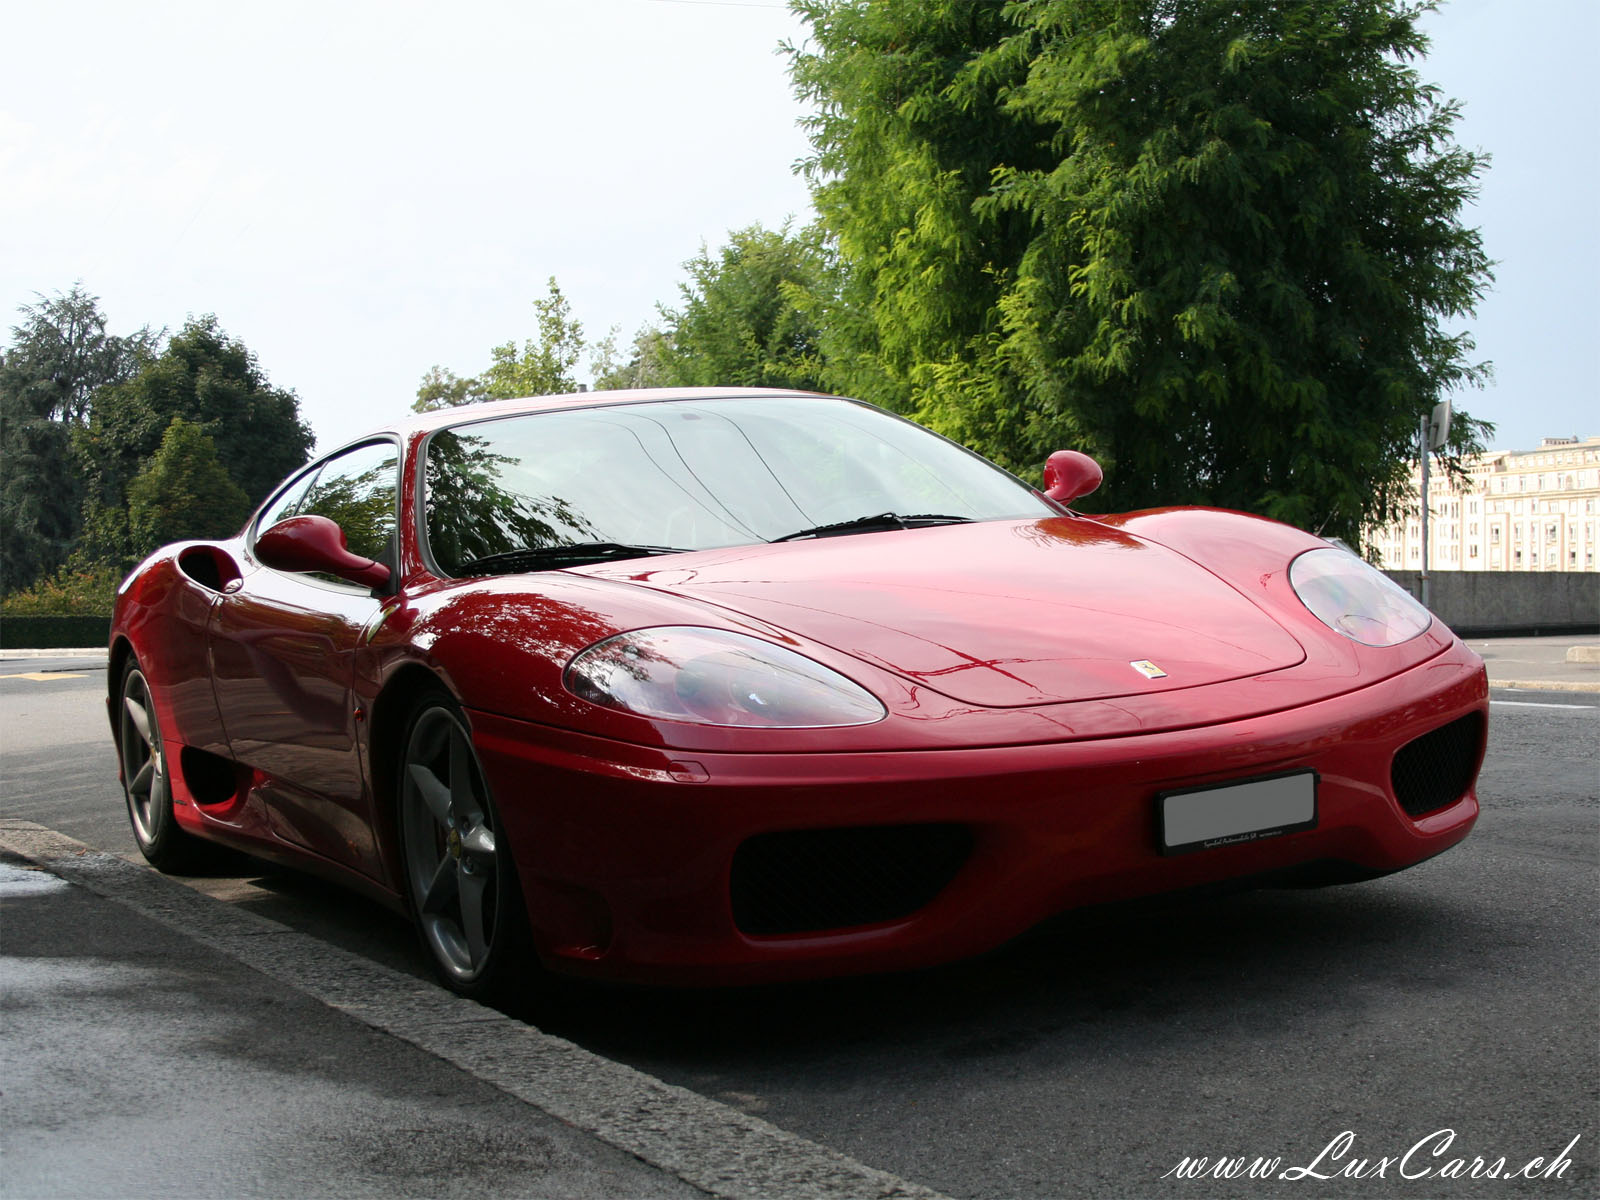 Wallpaper : Ferrari 360 Modena